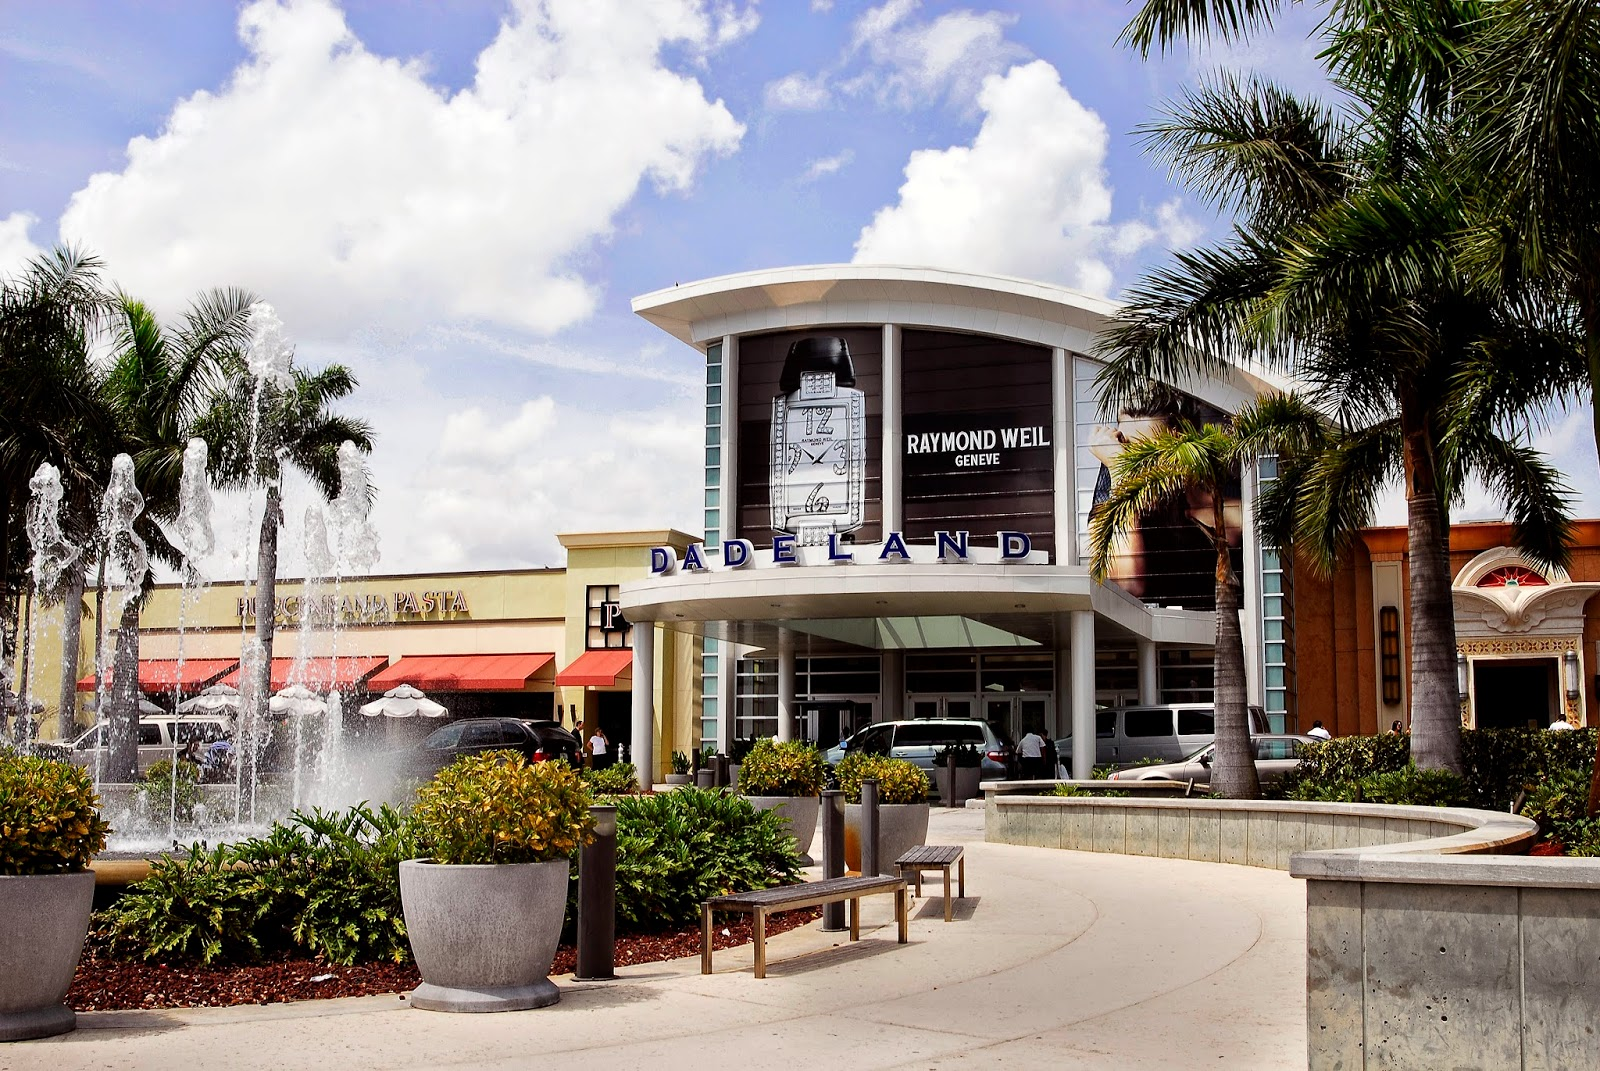 Cupid's Arrow Strikes at Dadeland Mall this Valentine's Day